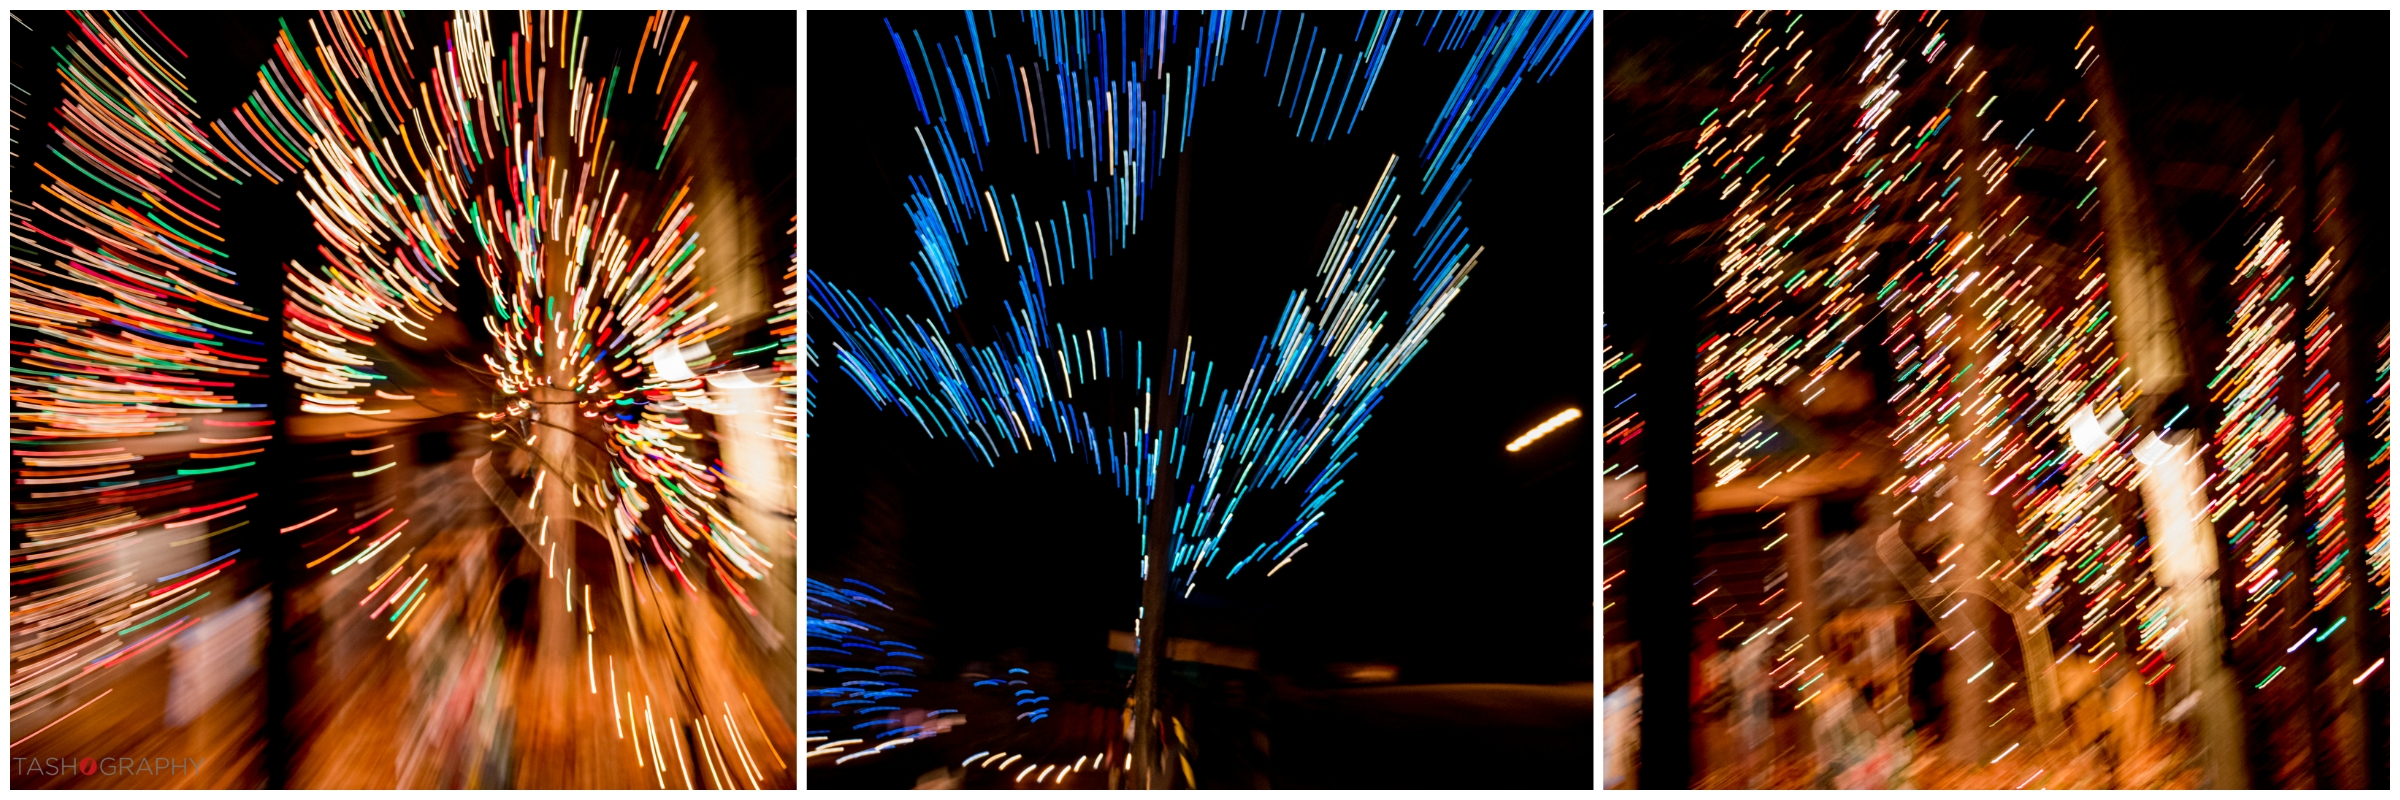 The Christmas lights with slow shutter speed whilezooming.